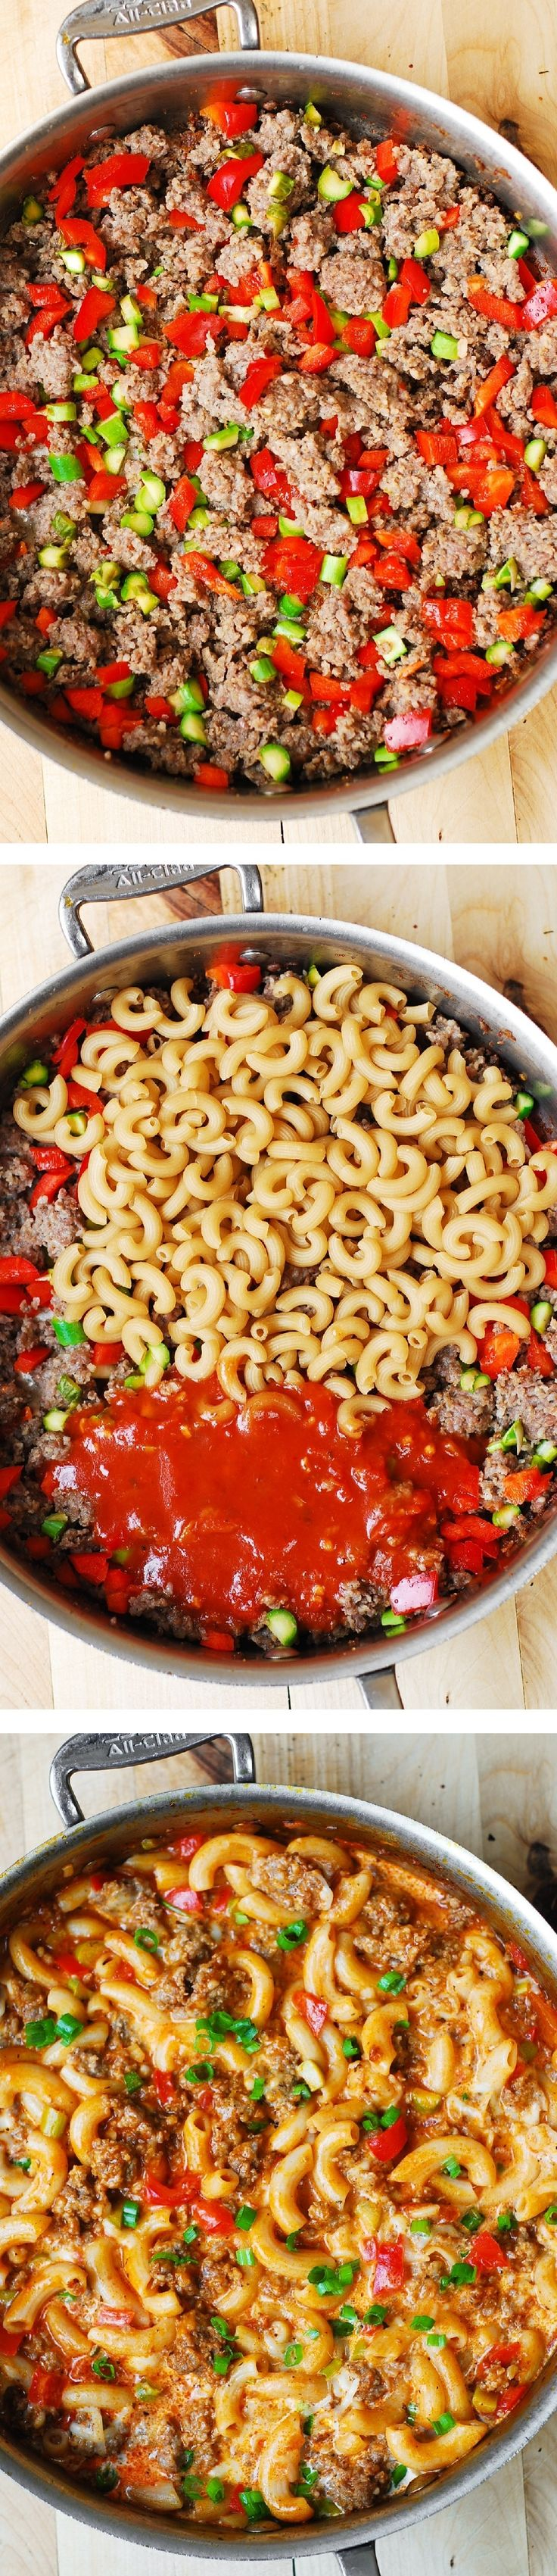 One-Skillet Mac and Cheese with Sausage and Bell Peppers, smothered in marinara sauce and cream. Everything is cooked in one skillet: sausage, bell peppers, and even pasta! Comfort food!